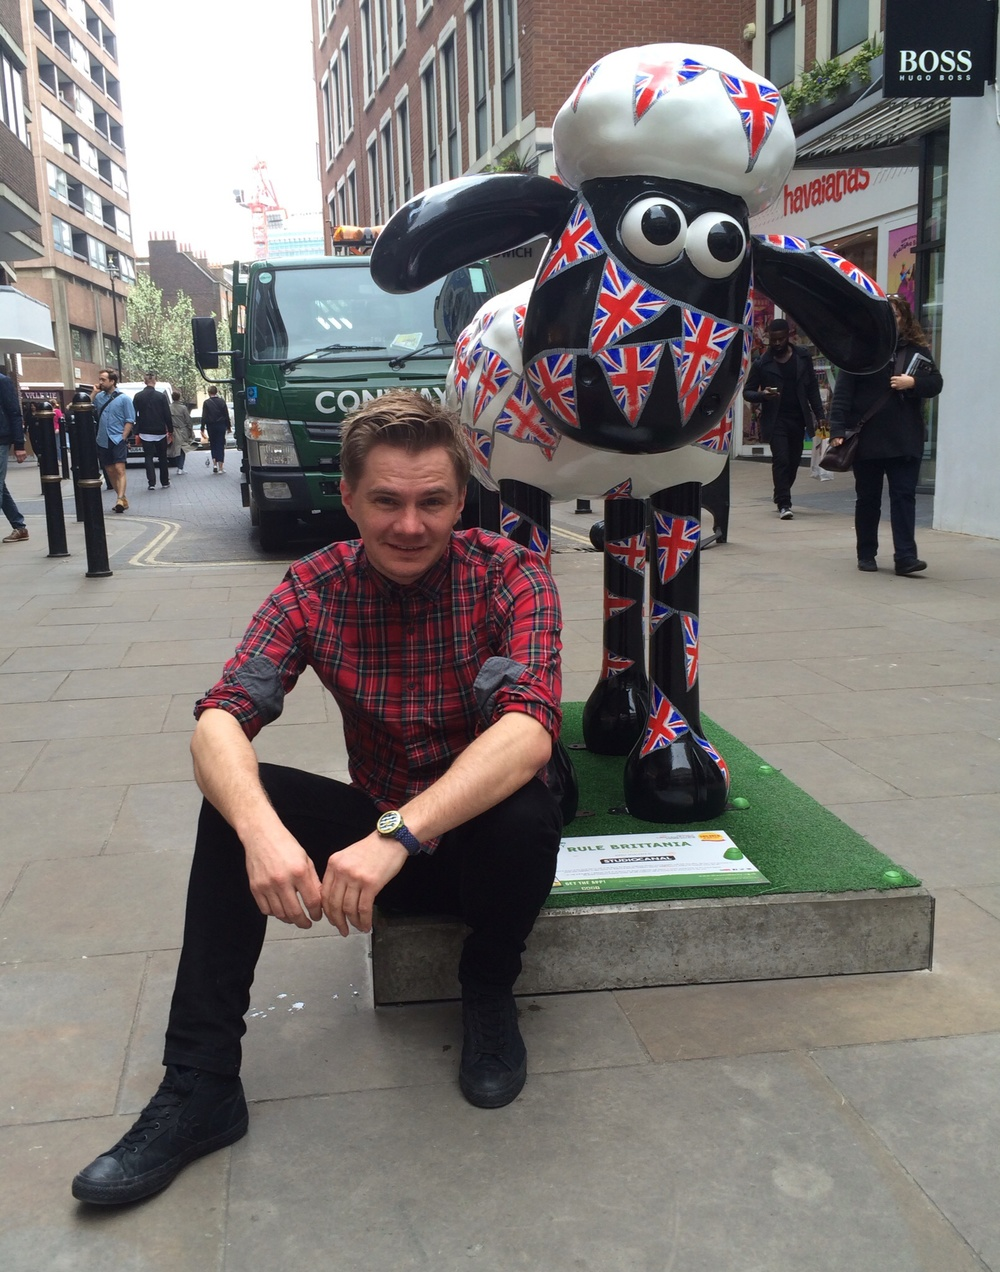 Me and my Shaun in the City, which is inspired by my picture book, 'The Queen's Hat'.